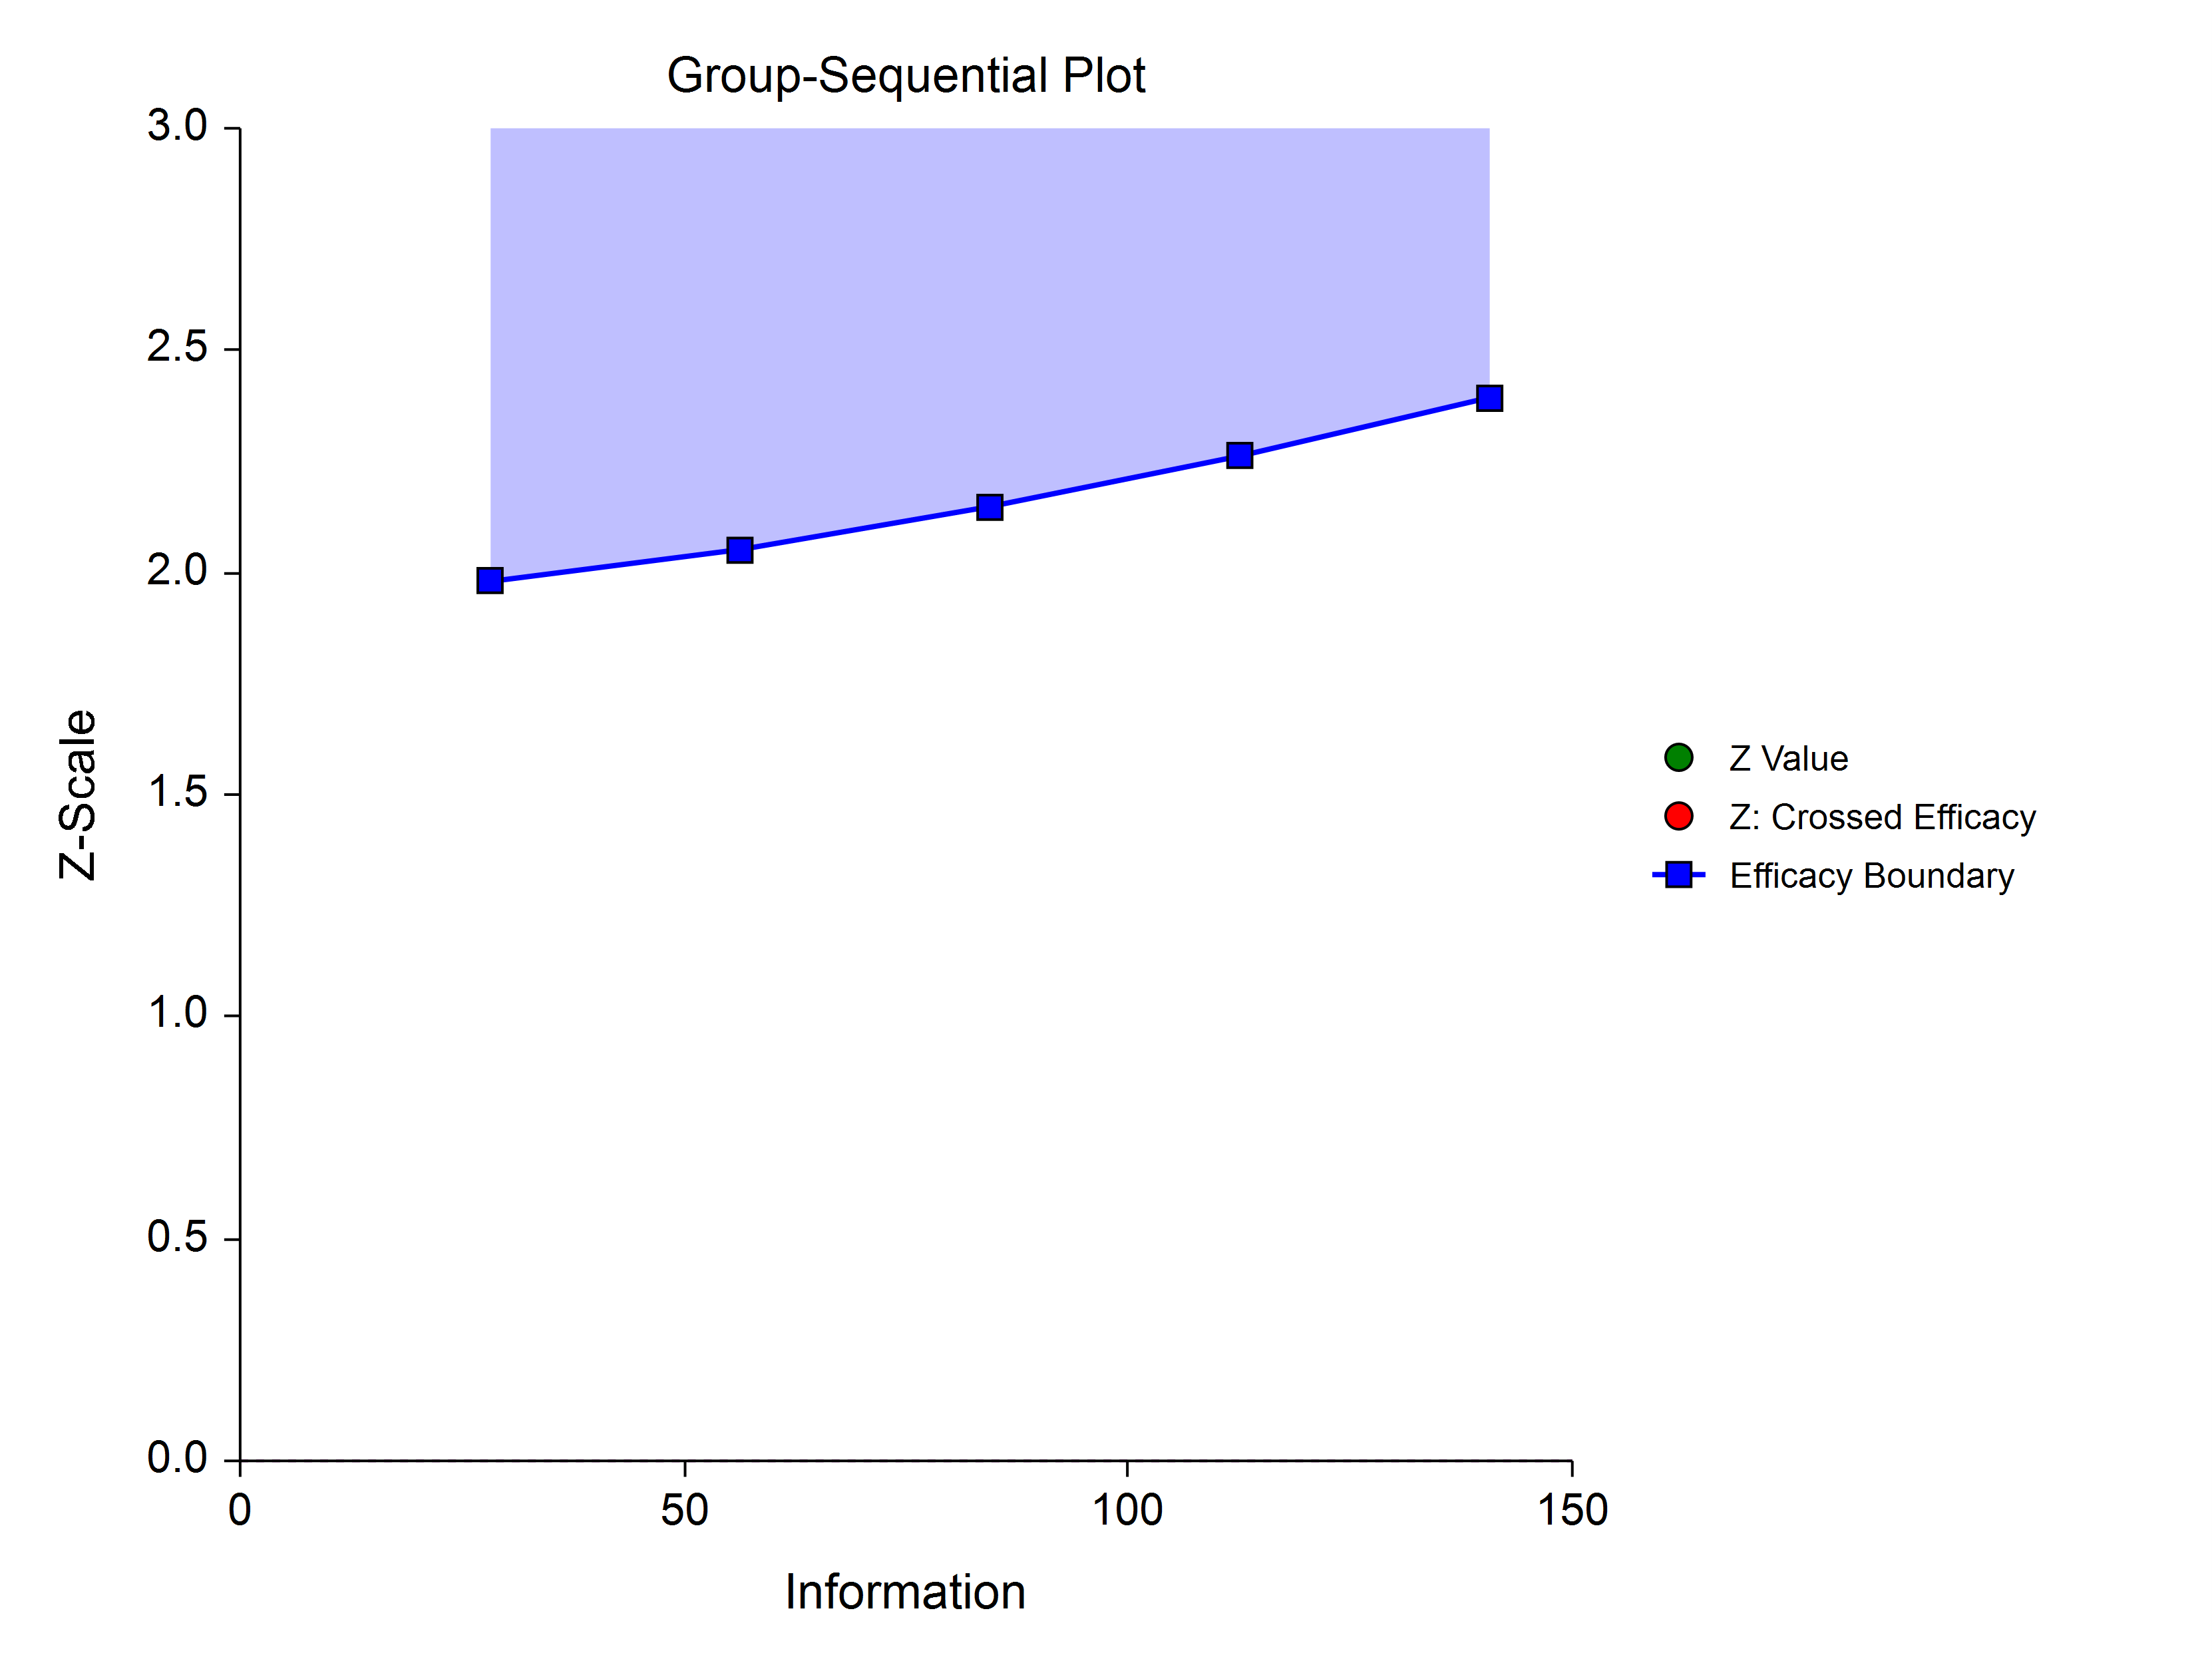 Group-Sequential Hwang-Shih-DeCani-Gamma-3 Spending Function